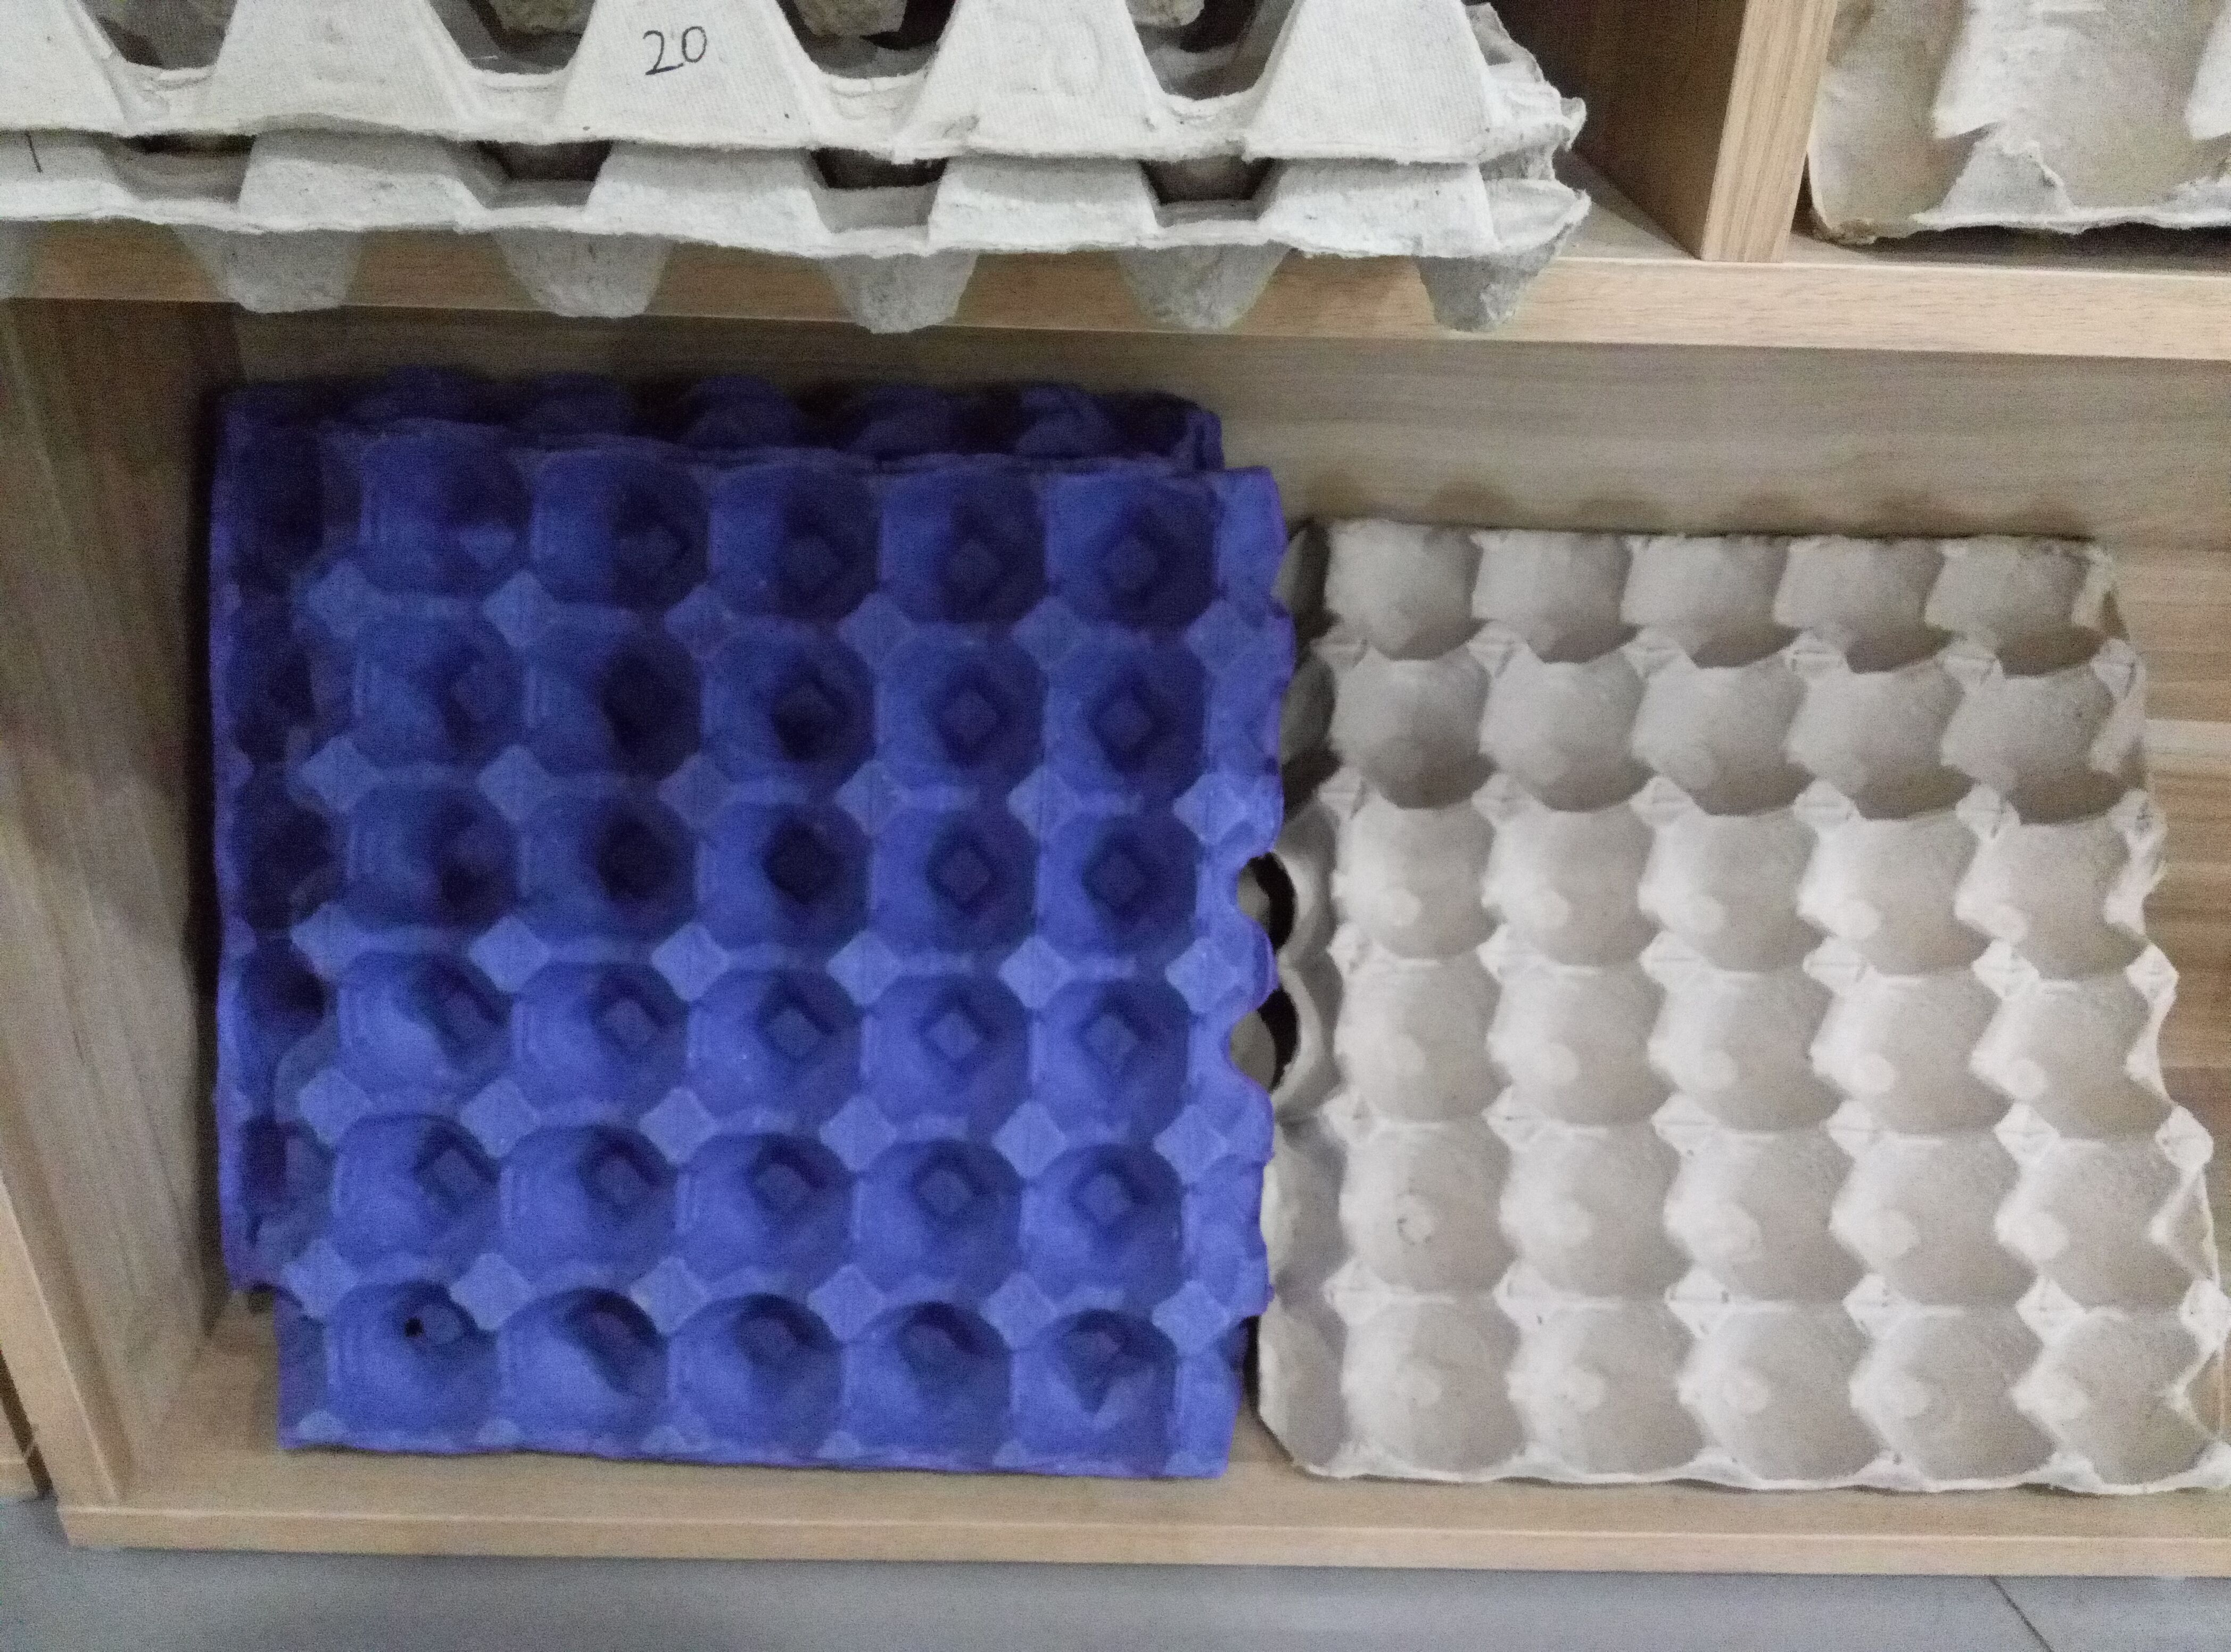 Paper Egg Tray Made by Beston Egg Tray Equipment